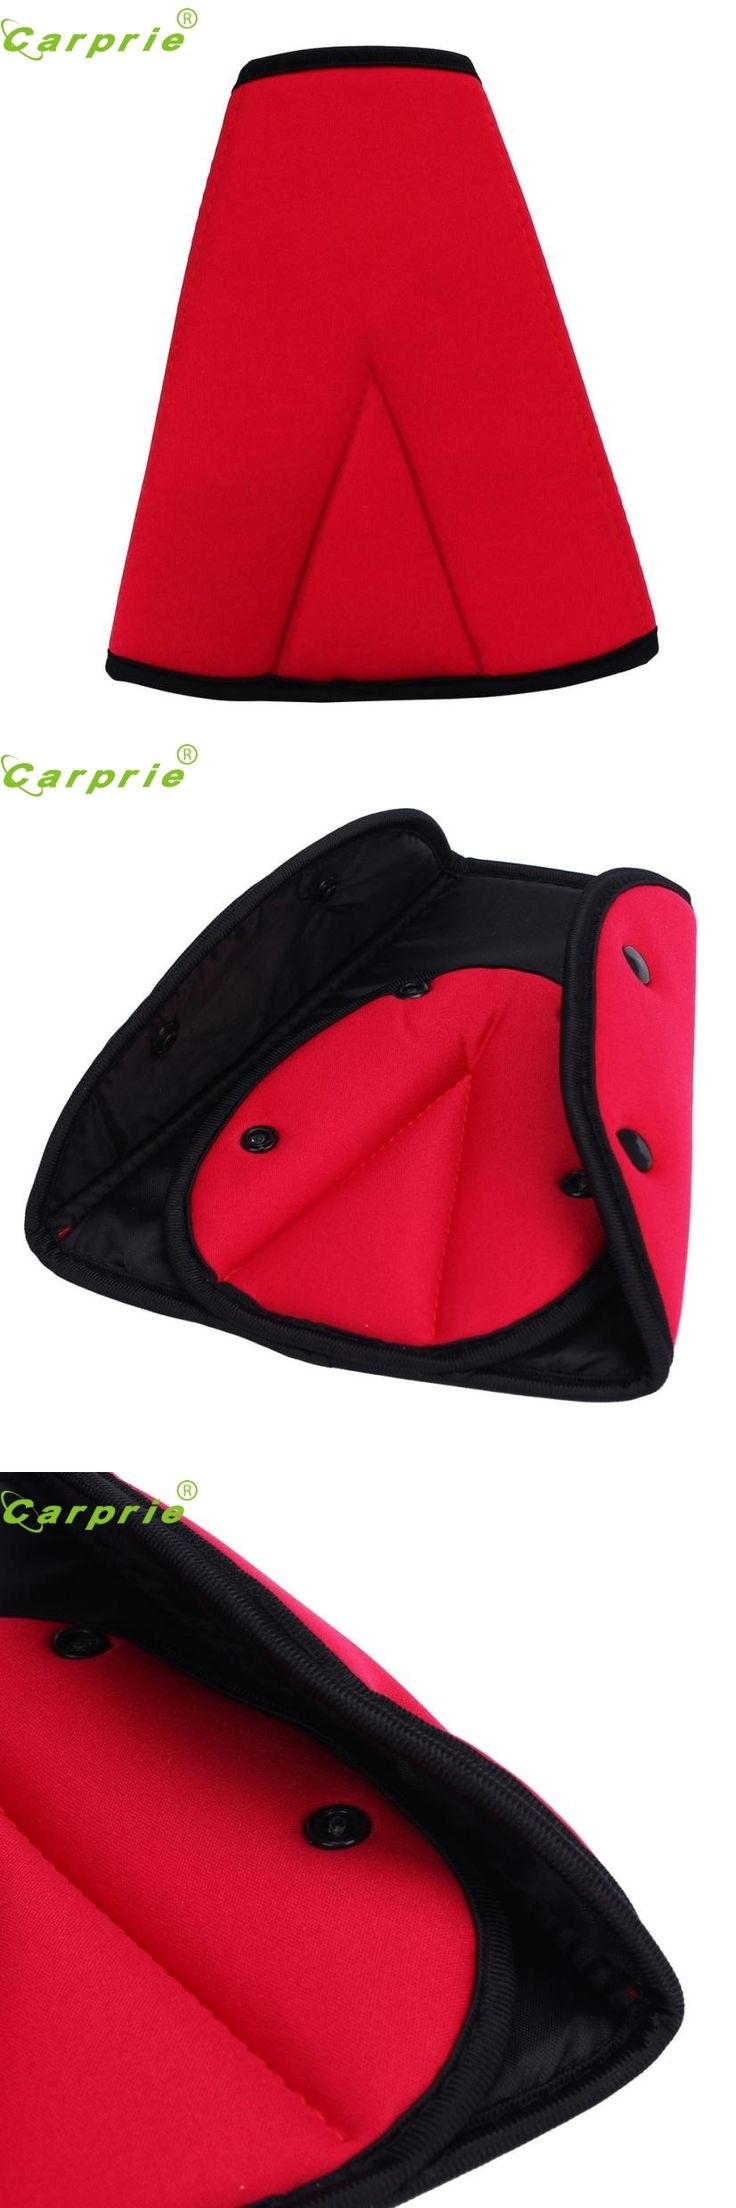 New Arrival  Children Car Safety Cover Strap Adjuster Pad Harness Seat Belt Clip RD Oct10